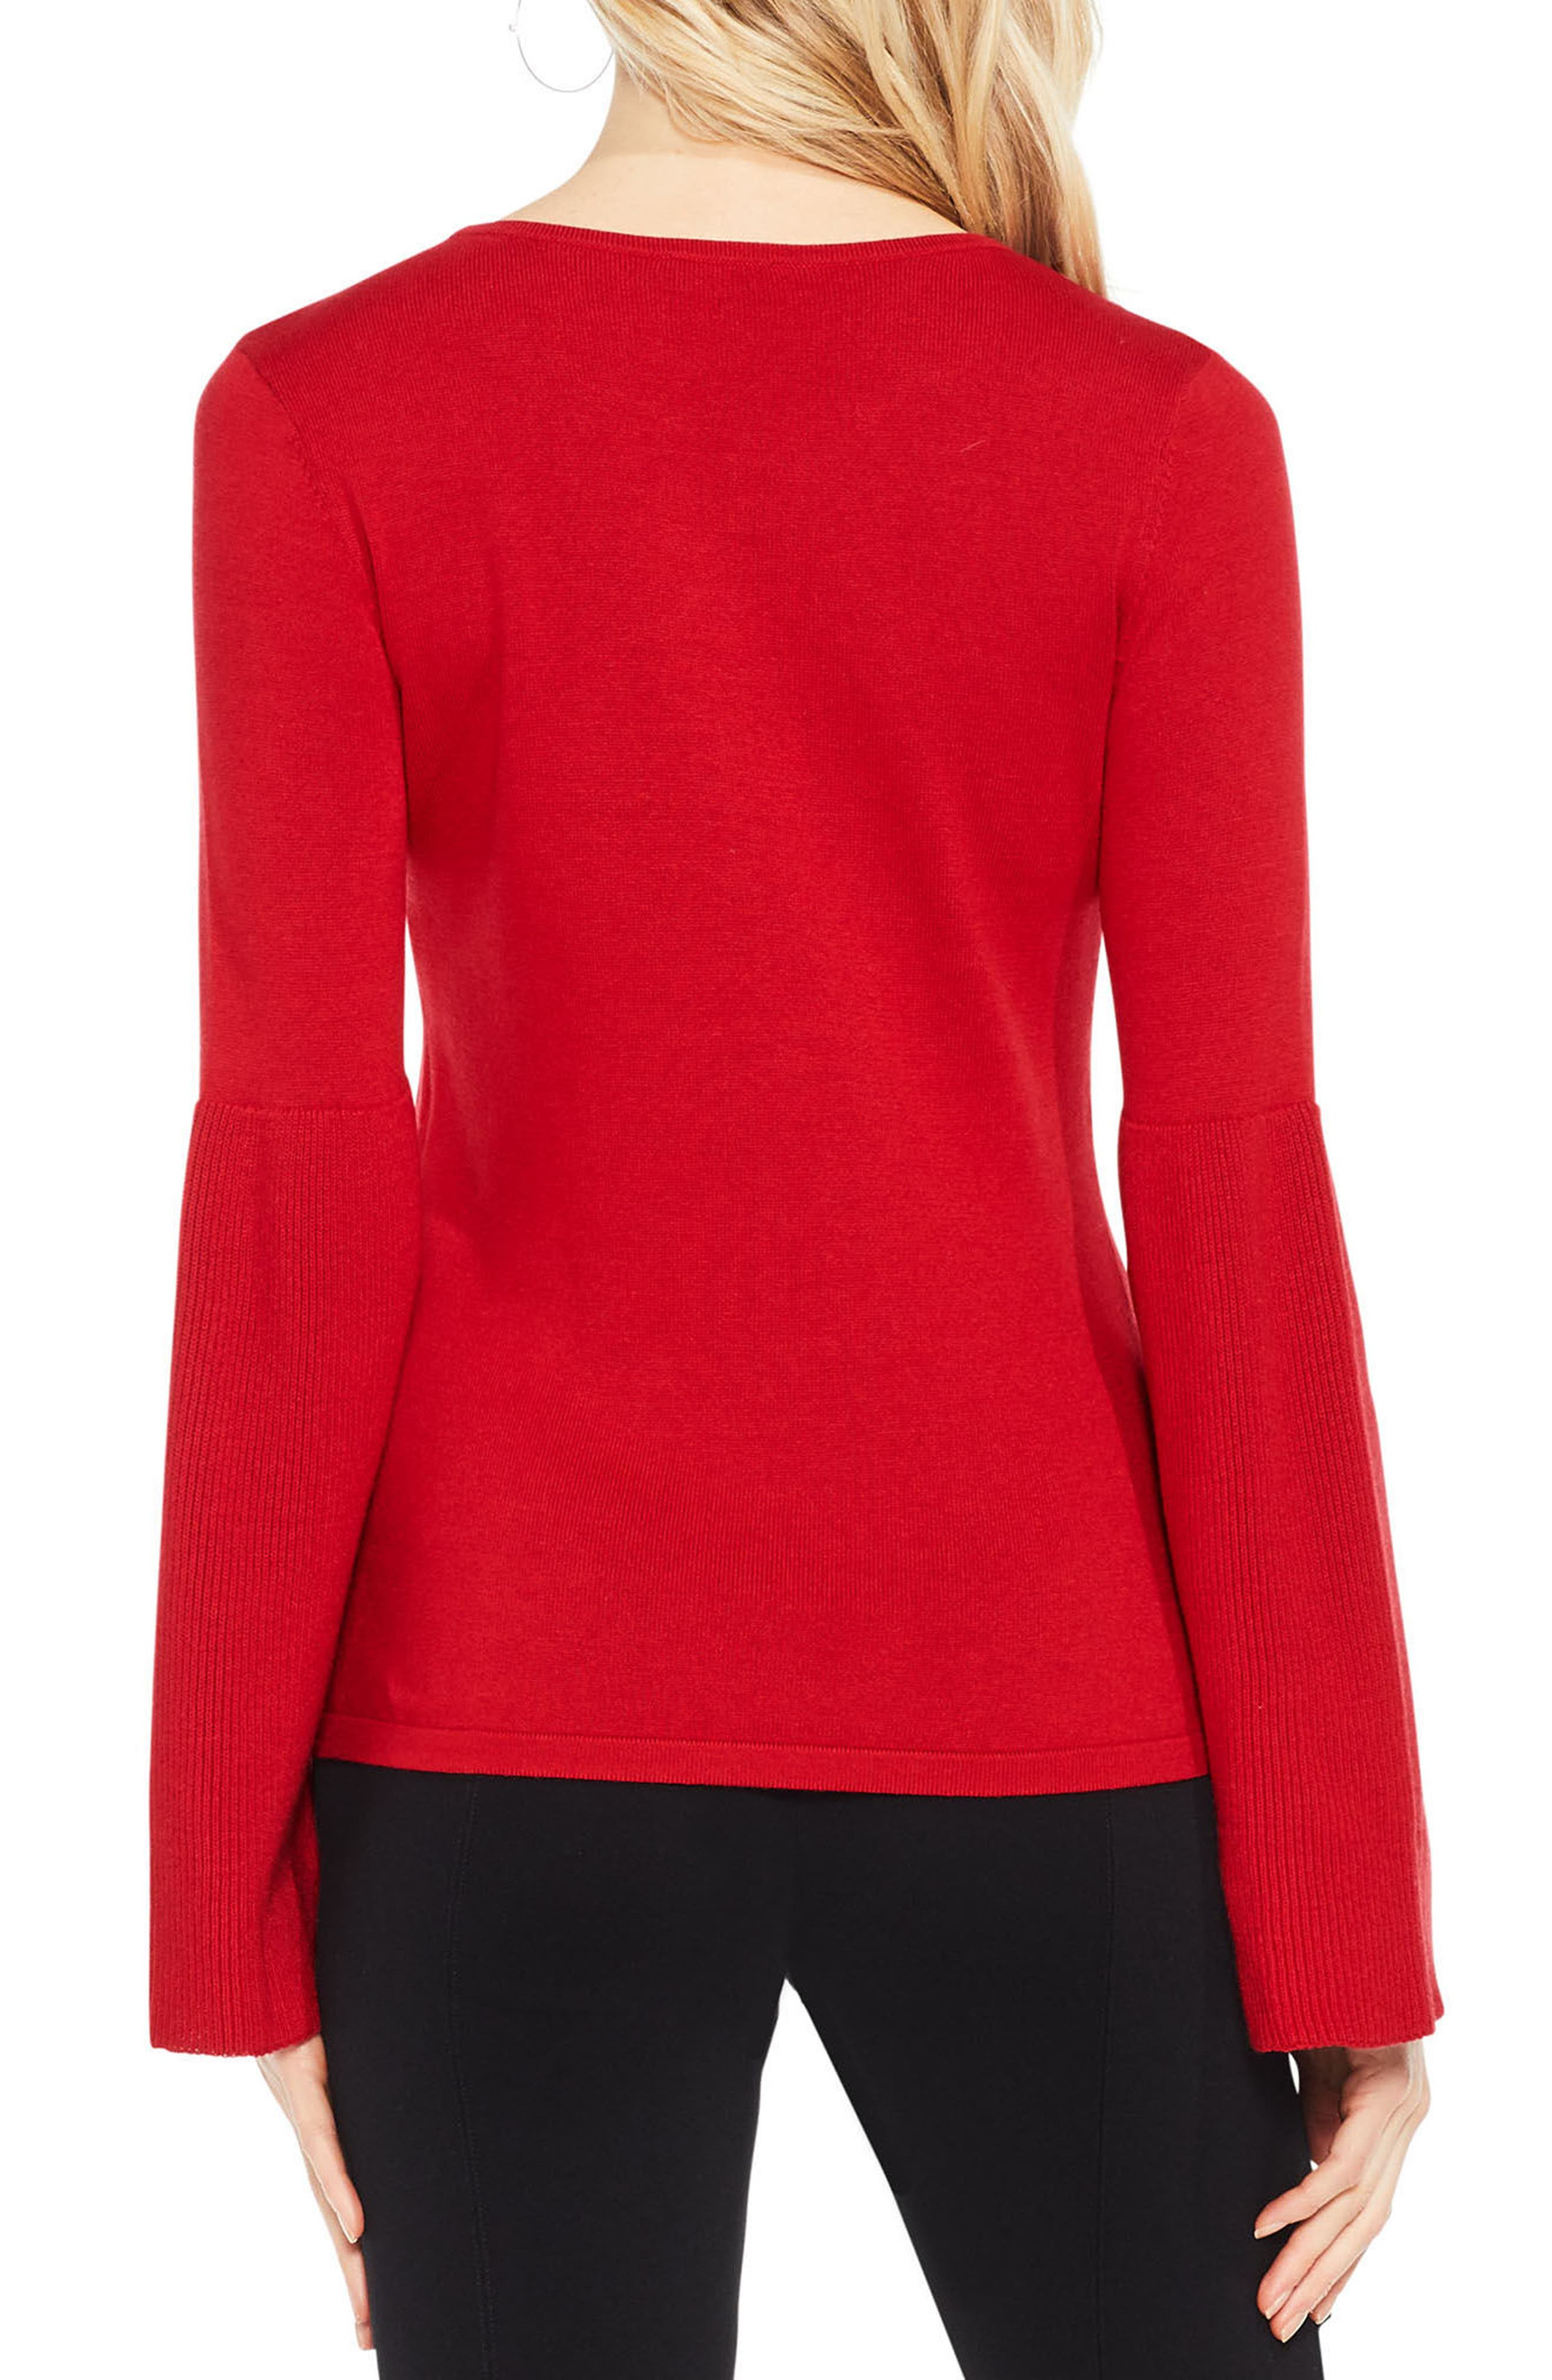 Alternate Image 2  - Vince Camuto Ribbed Bell Sleeve Sweater (Regular & Petite)